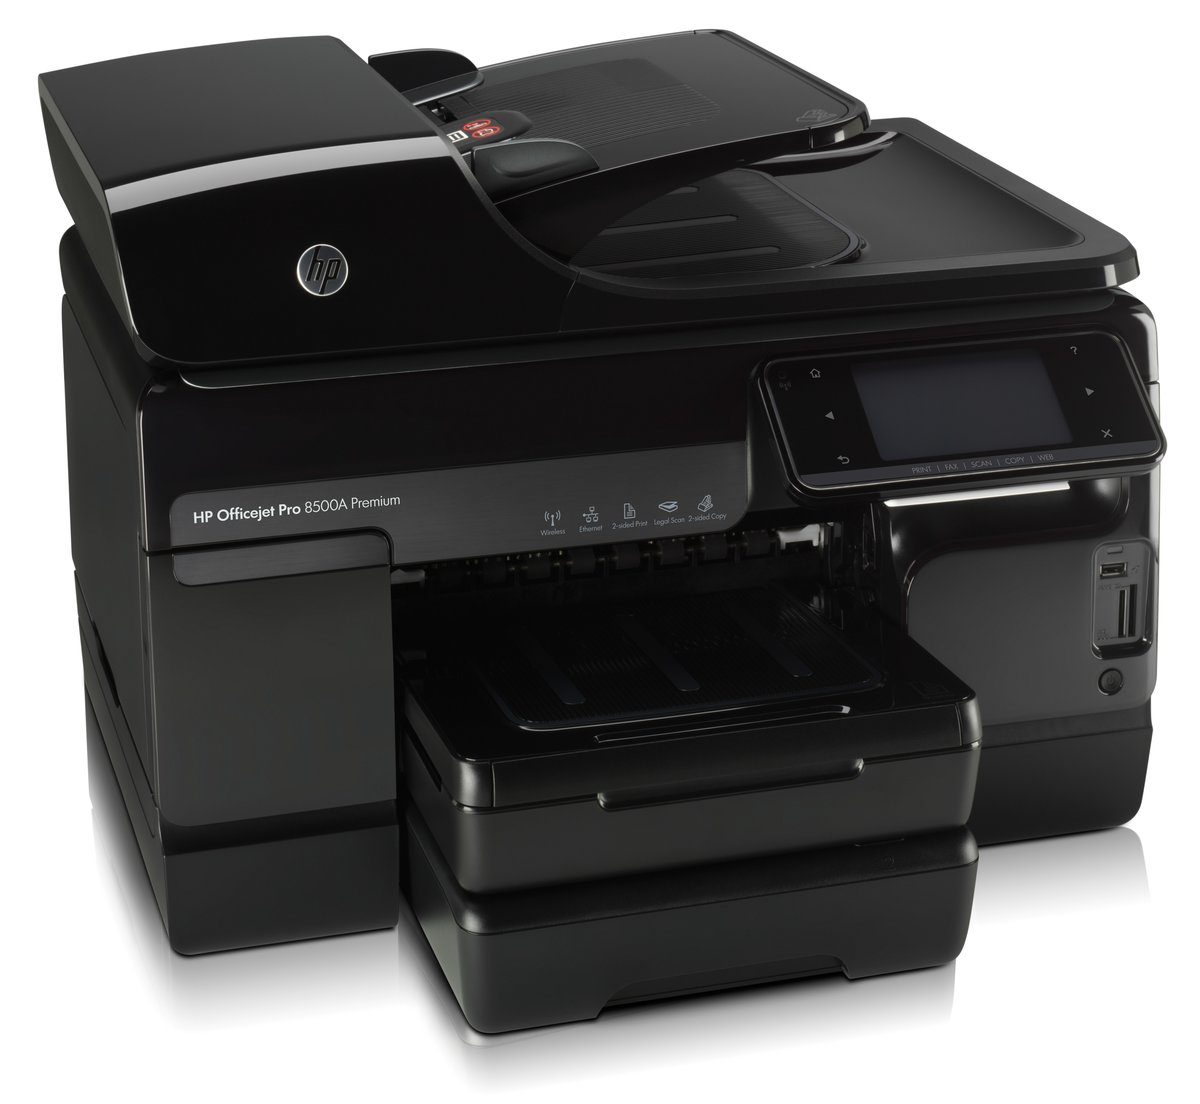 HP Officejet Pro 8500A Premium ePrint All In One Printer Copier Scanner Fax  by Office Depot & OfficeMax